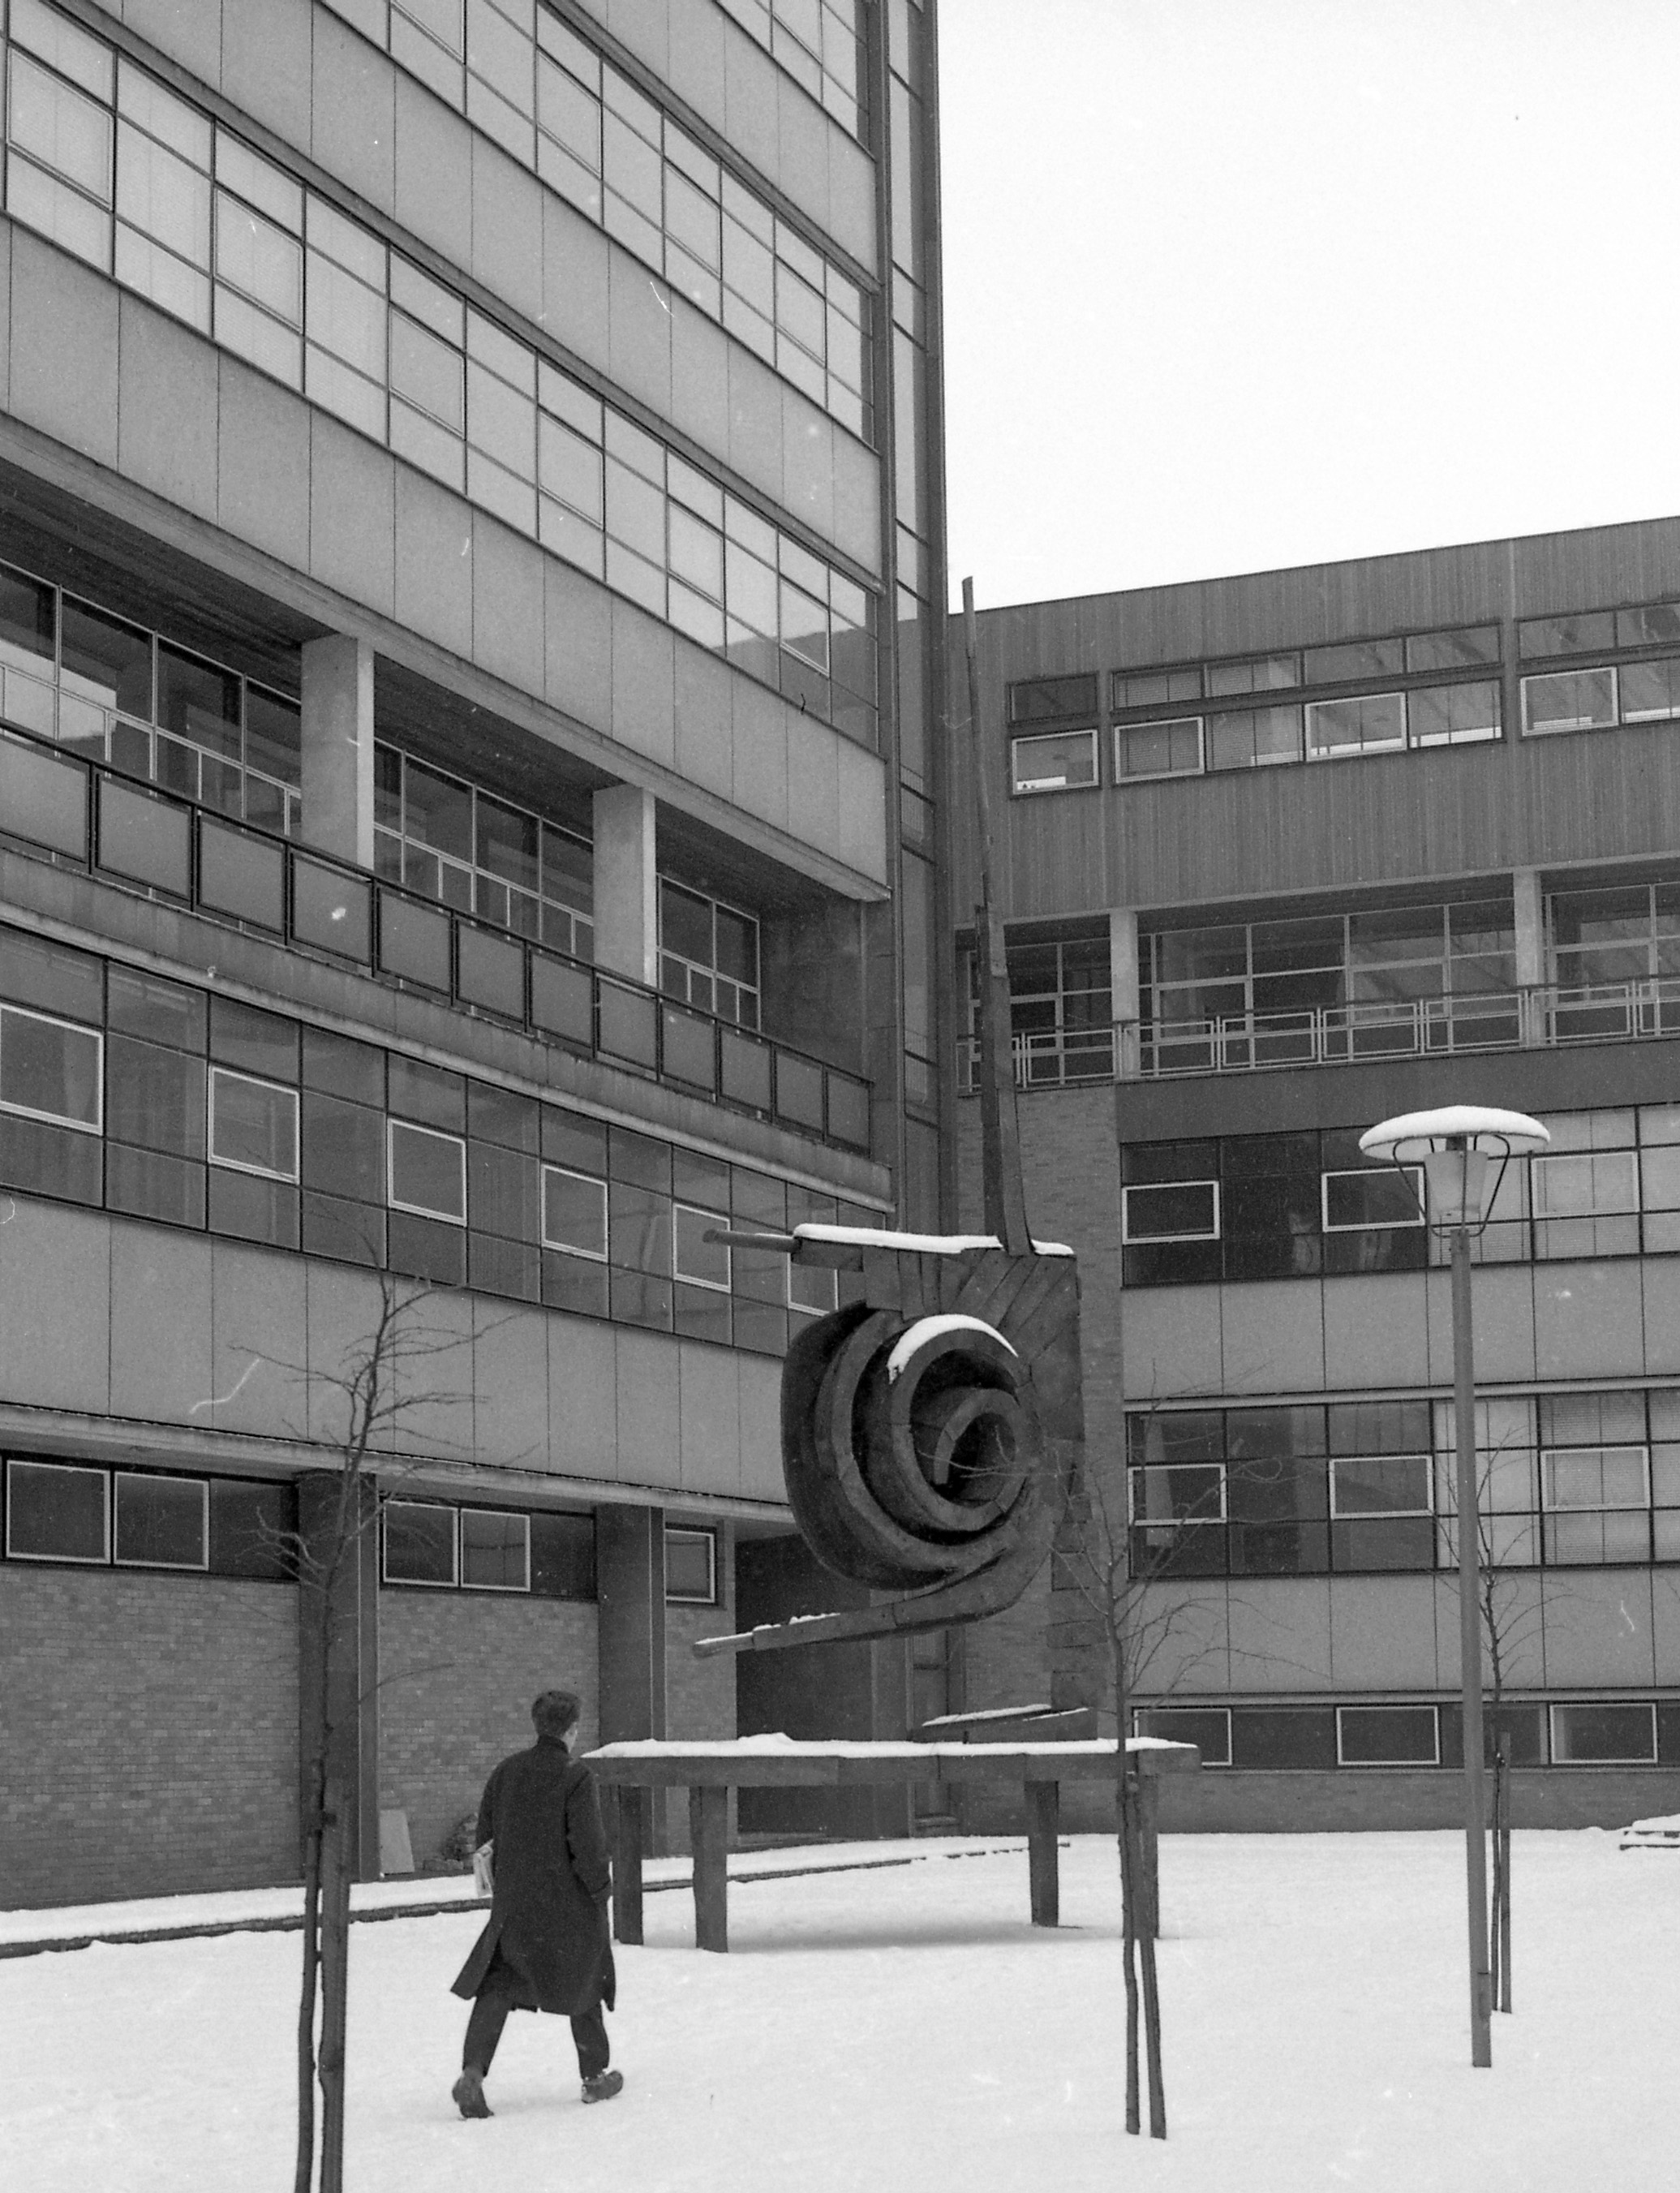 Photograph of Herschel Building and Spiral Nebula sculpture